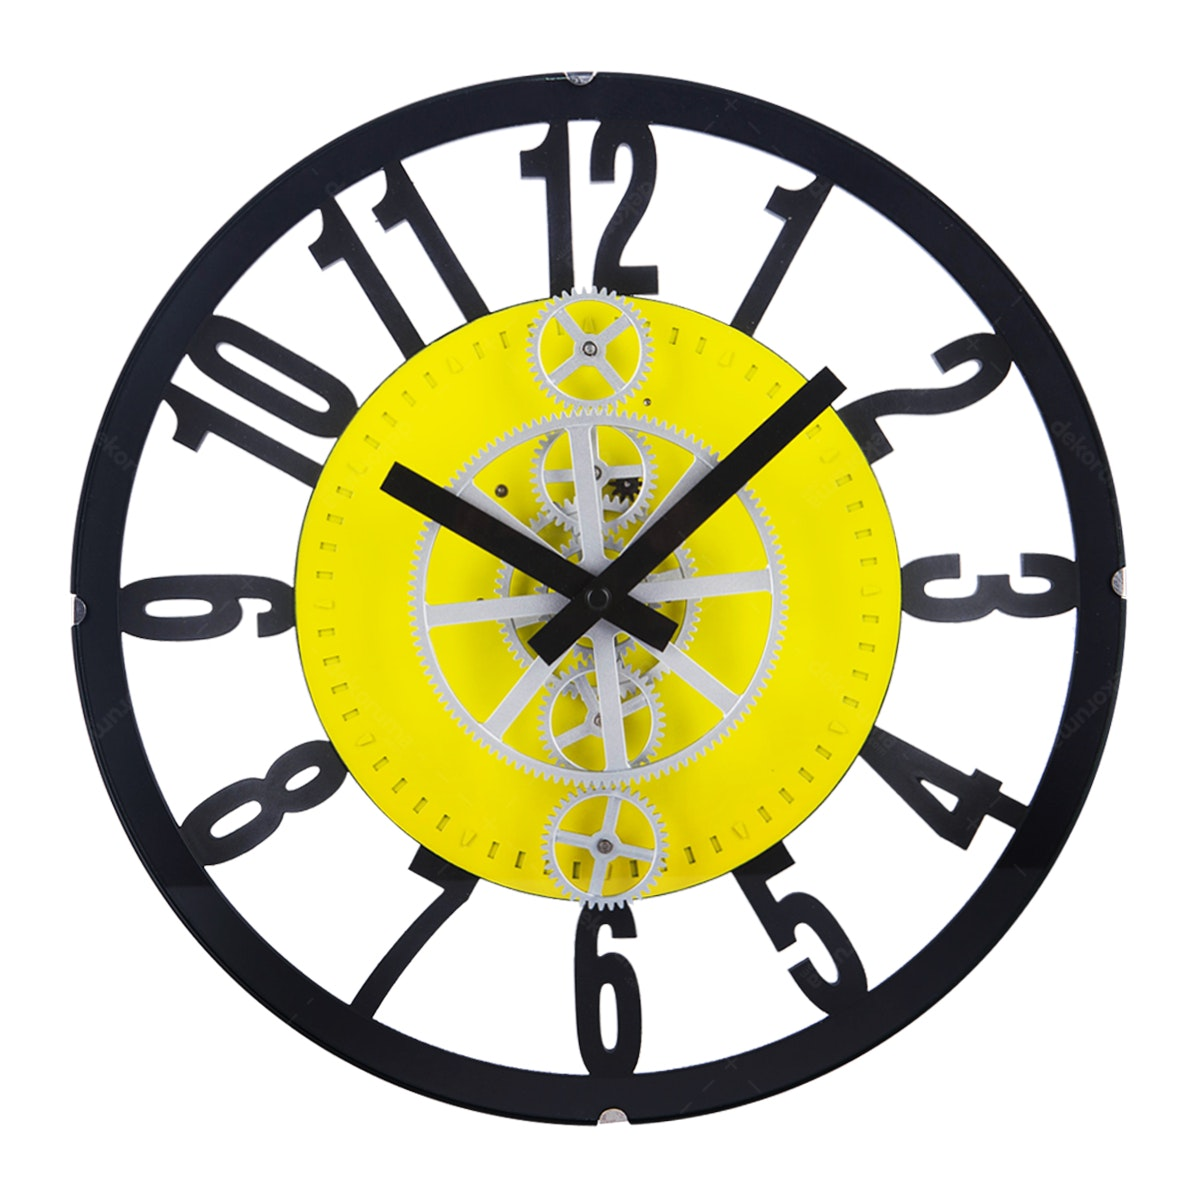 Gearclock Plastic Gear Wall Clock Yellow Black